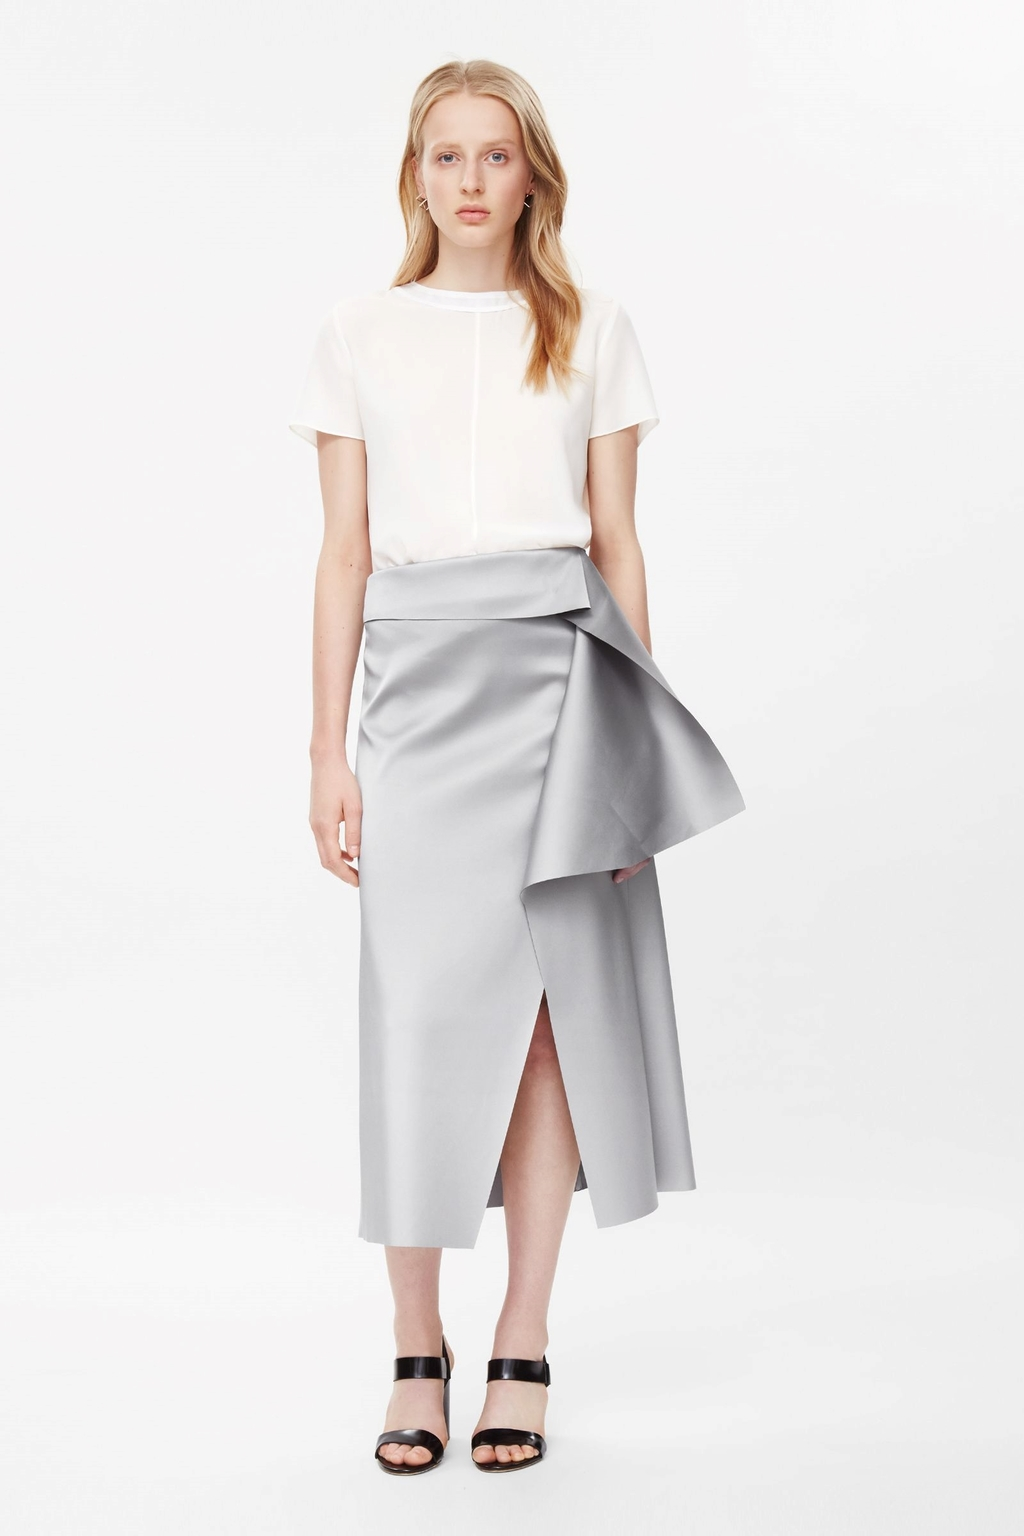 Raw Cut Draped Skirt - length: calf length; pattern: plain; style: wrap/faux wrap; fit: loose/voluminous; waist detail: wide waistband/cummerbund; waist: high rise; predominant colour: silver; occasions: evening, occasion; fibres: polyester/polyamide - stretch; hip detail: slits at hip; texture group: structured shiny - satin/tafetta/silk etc.; pattern type: fabric; season: s/s 2015